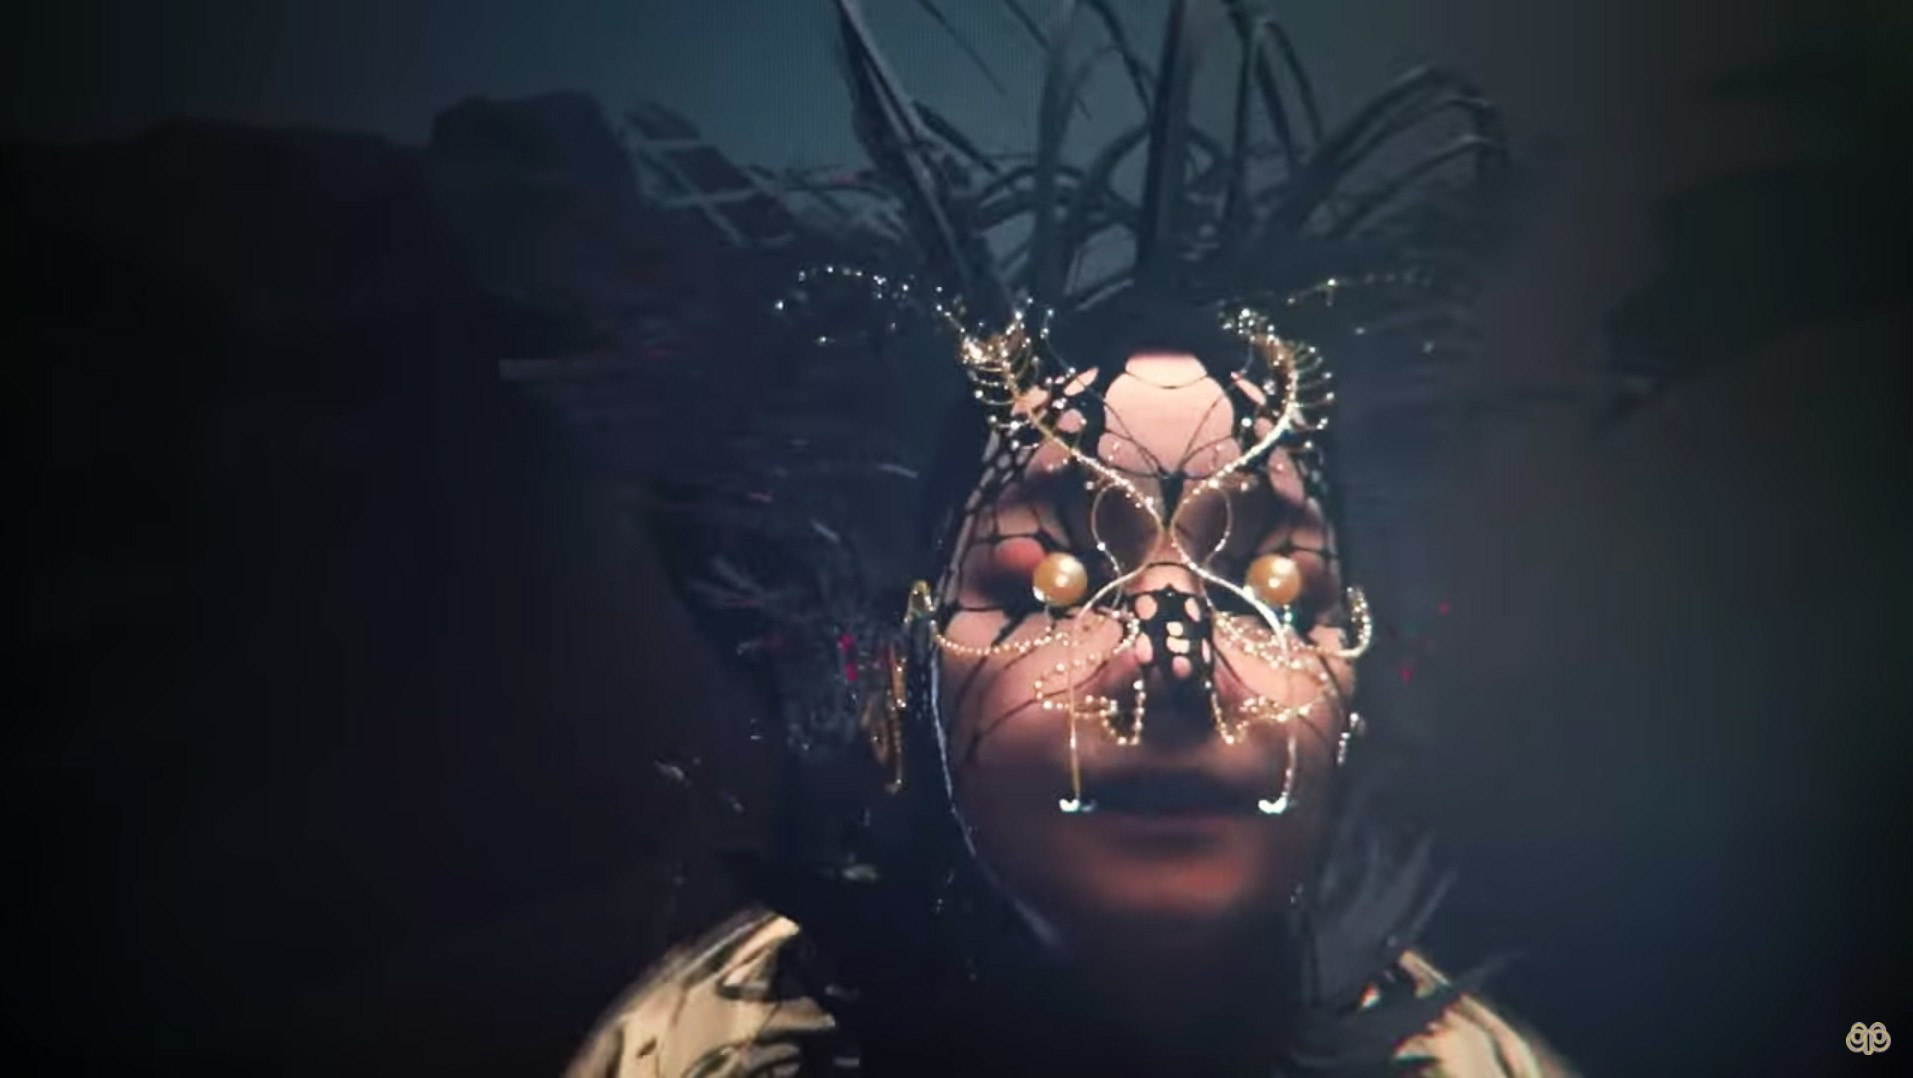 björk is a glittering, flaming sea creature in her latest virtual reality music video